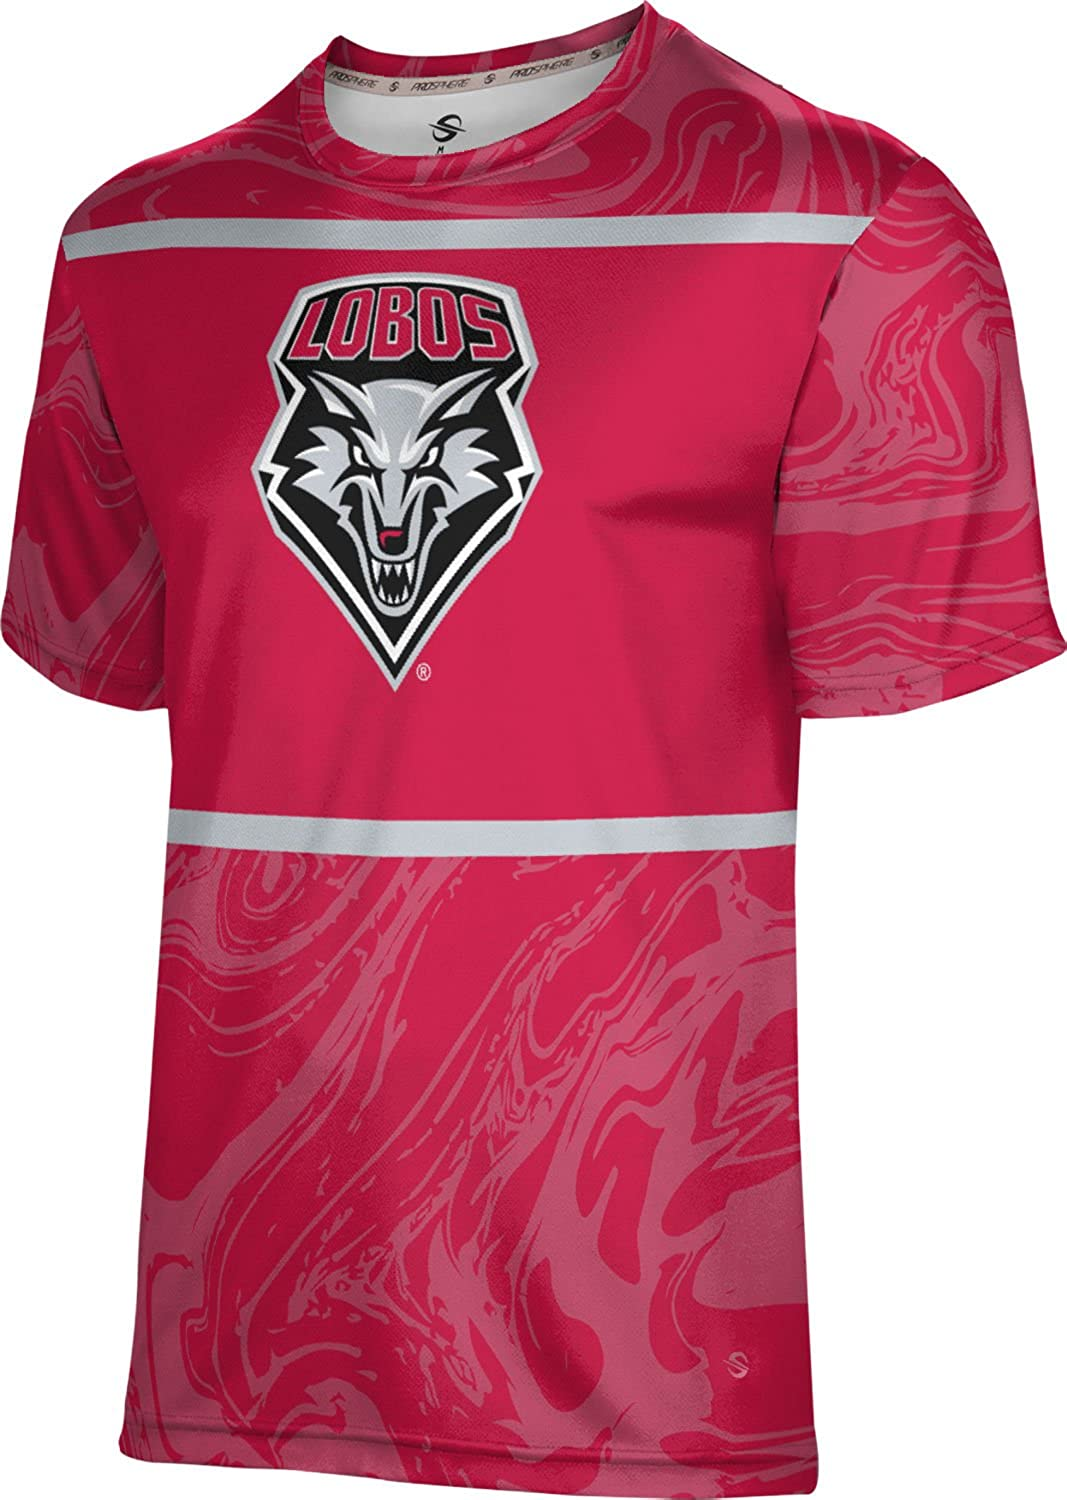 Ripple ProSphere The University of New Mexico Boys Performance T-Shirt